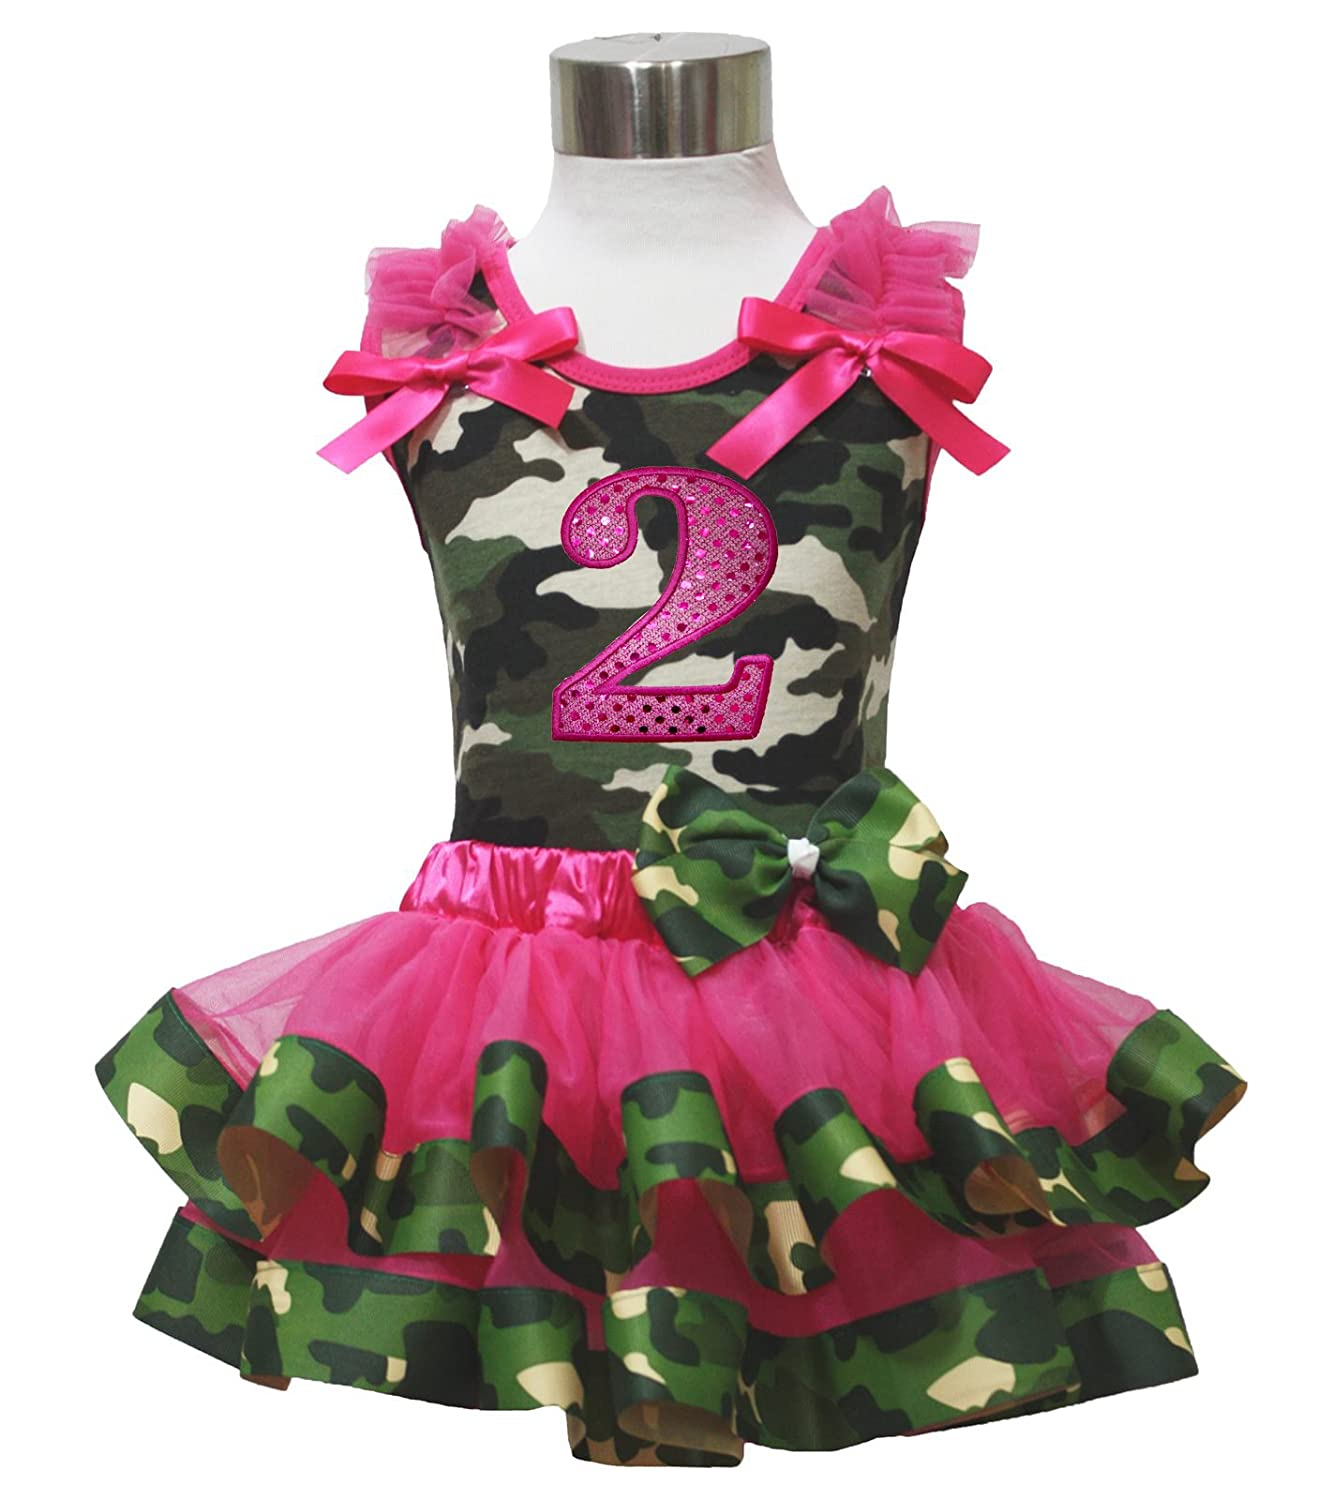 Birthday 2nd Camouflage Top Shirt Hot Pink Satin Trim Girl Skirt Set Nb-8y PO493